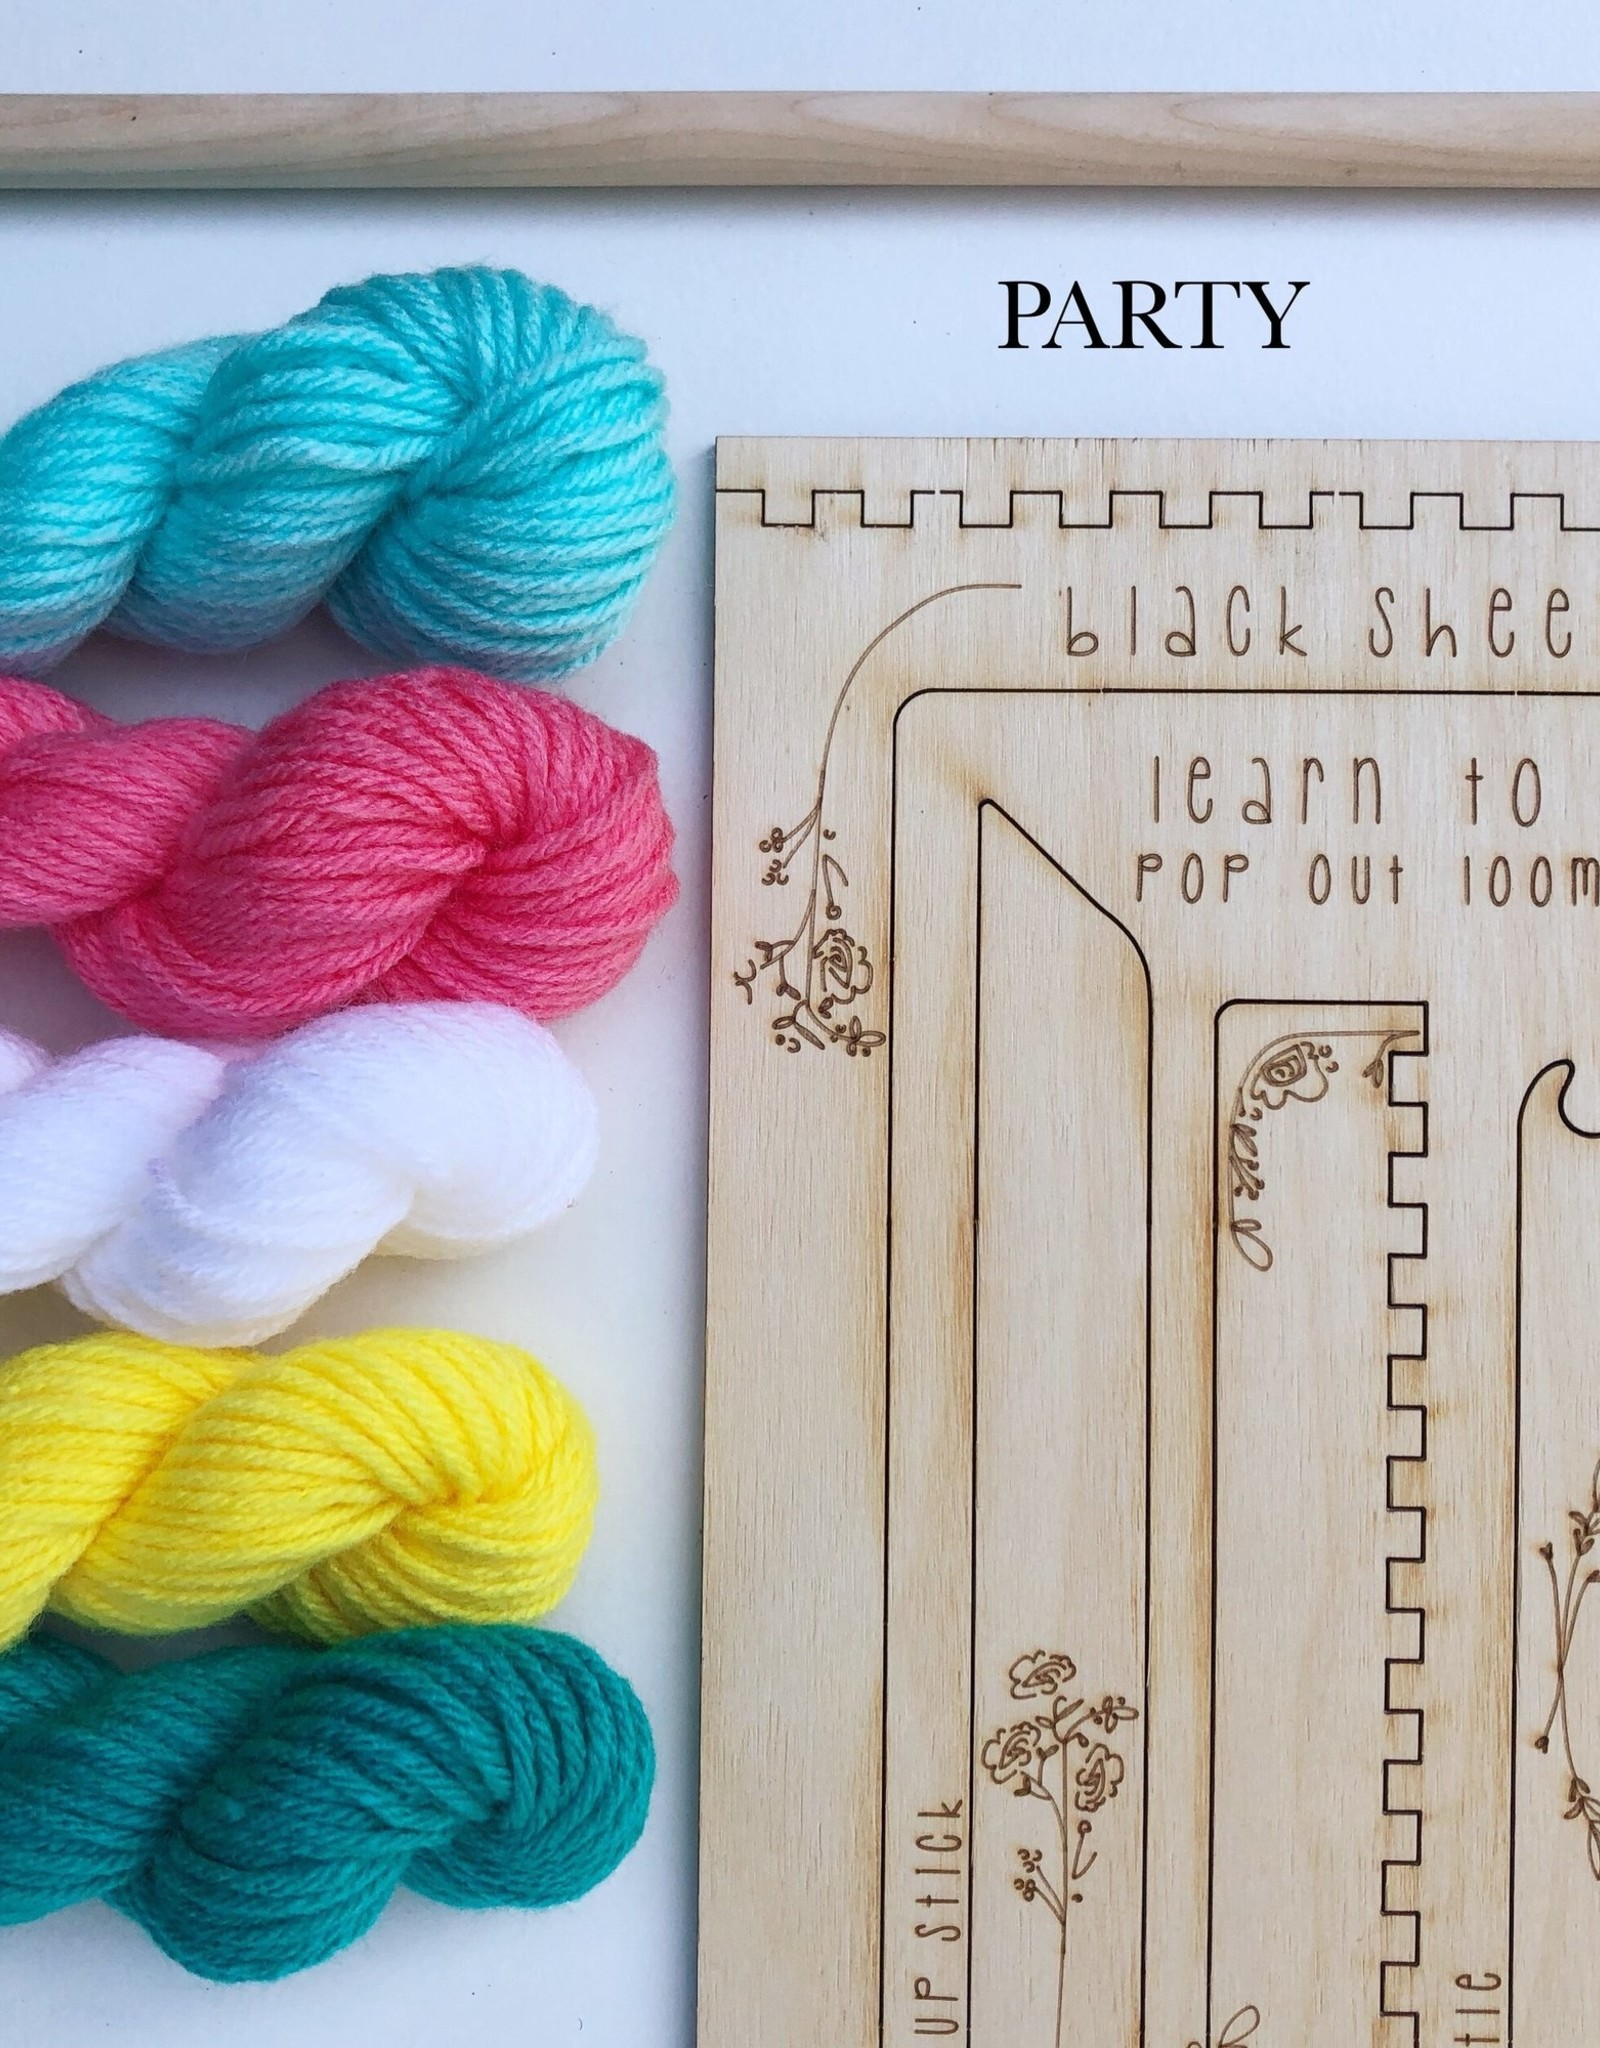 Black Sheep Goods Learn to Weave Kit: Pop Out Loom and Tools with Yarn